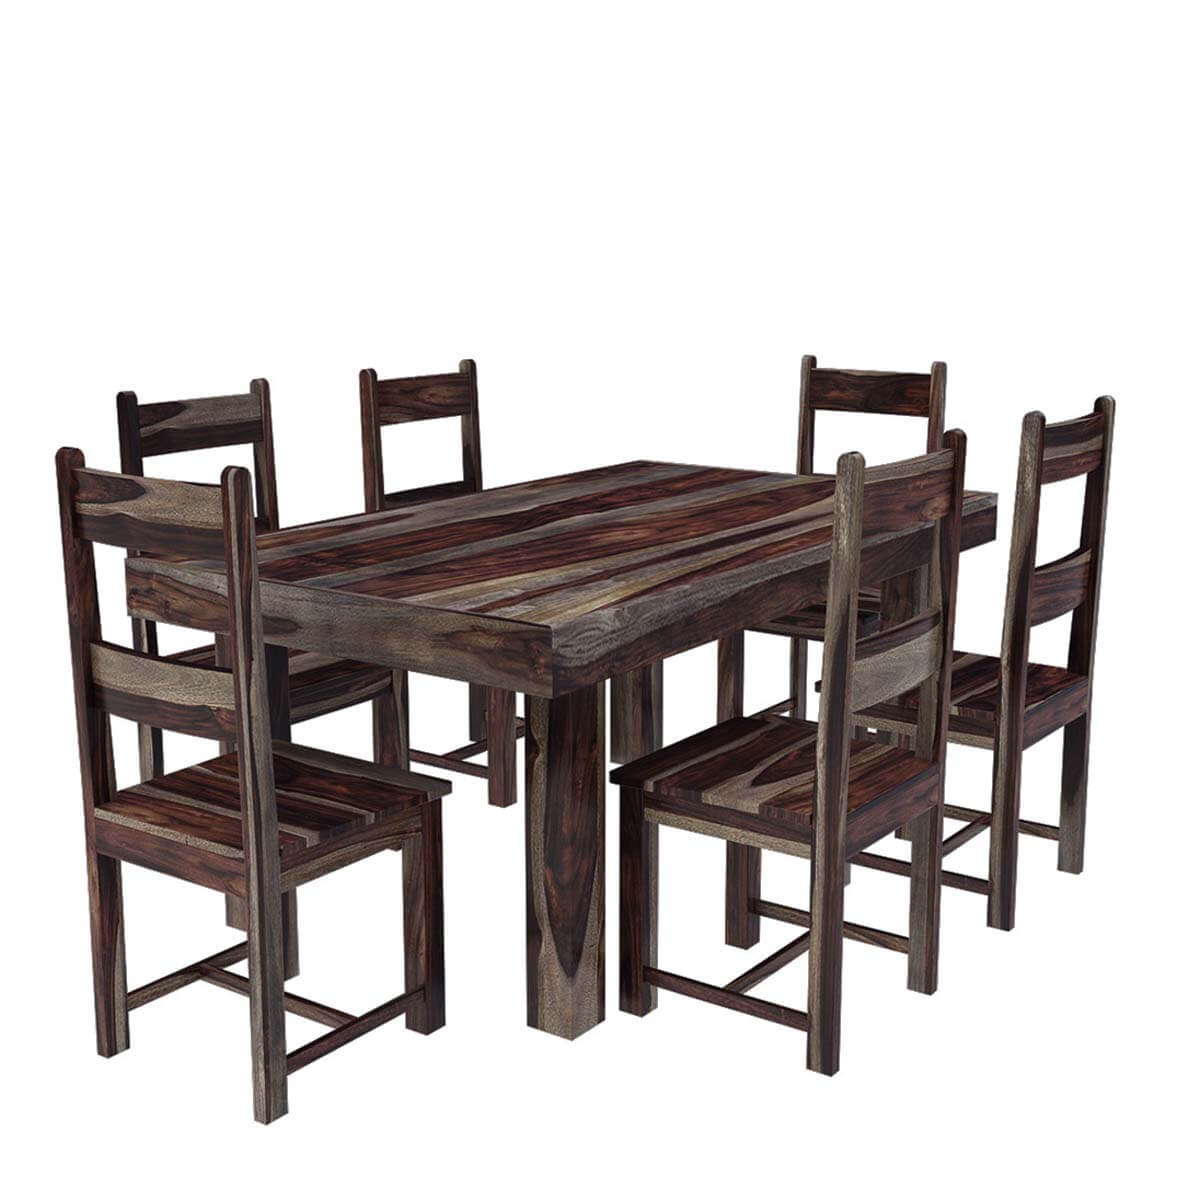 Frisco modern solid wood casual rustic dining room table for Wooden dining table and chairs